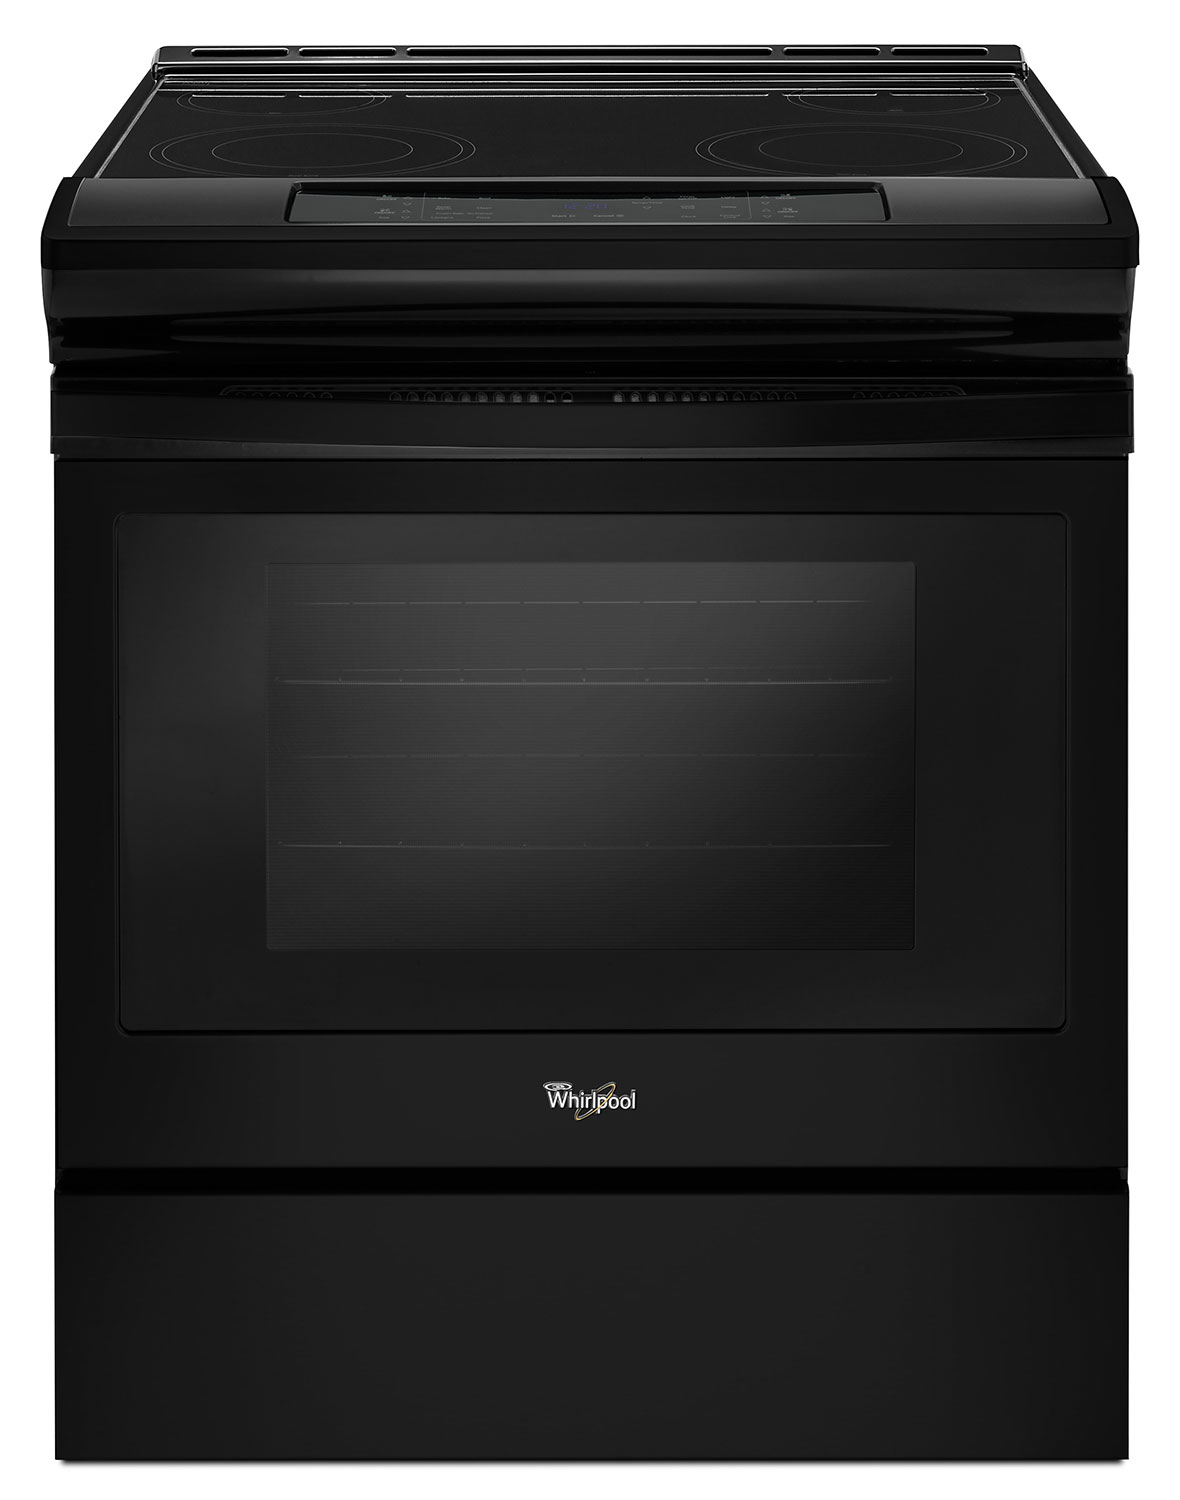 Cooking Products - Whirlpool Black Slide-In Electric Range (4.8 Cu. Ft.) - YWEE510S0FB